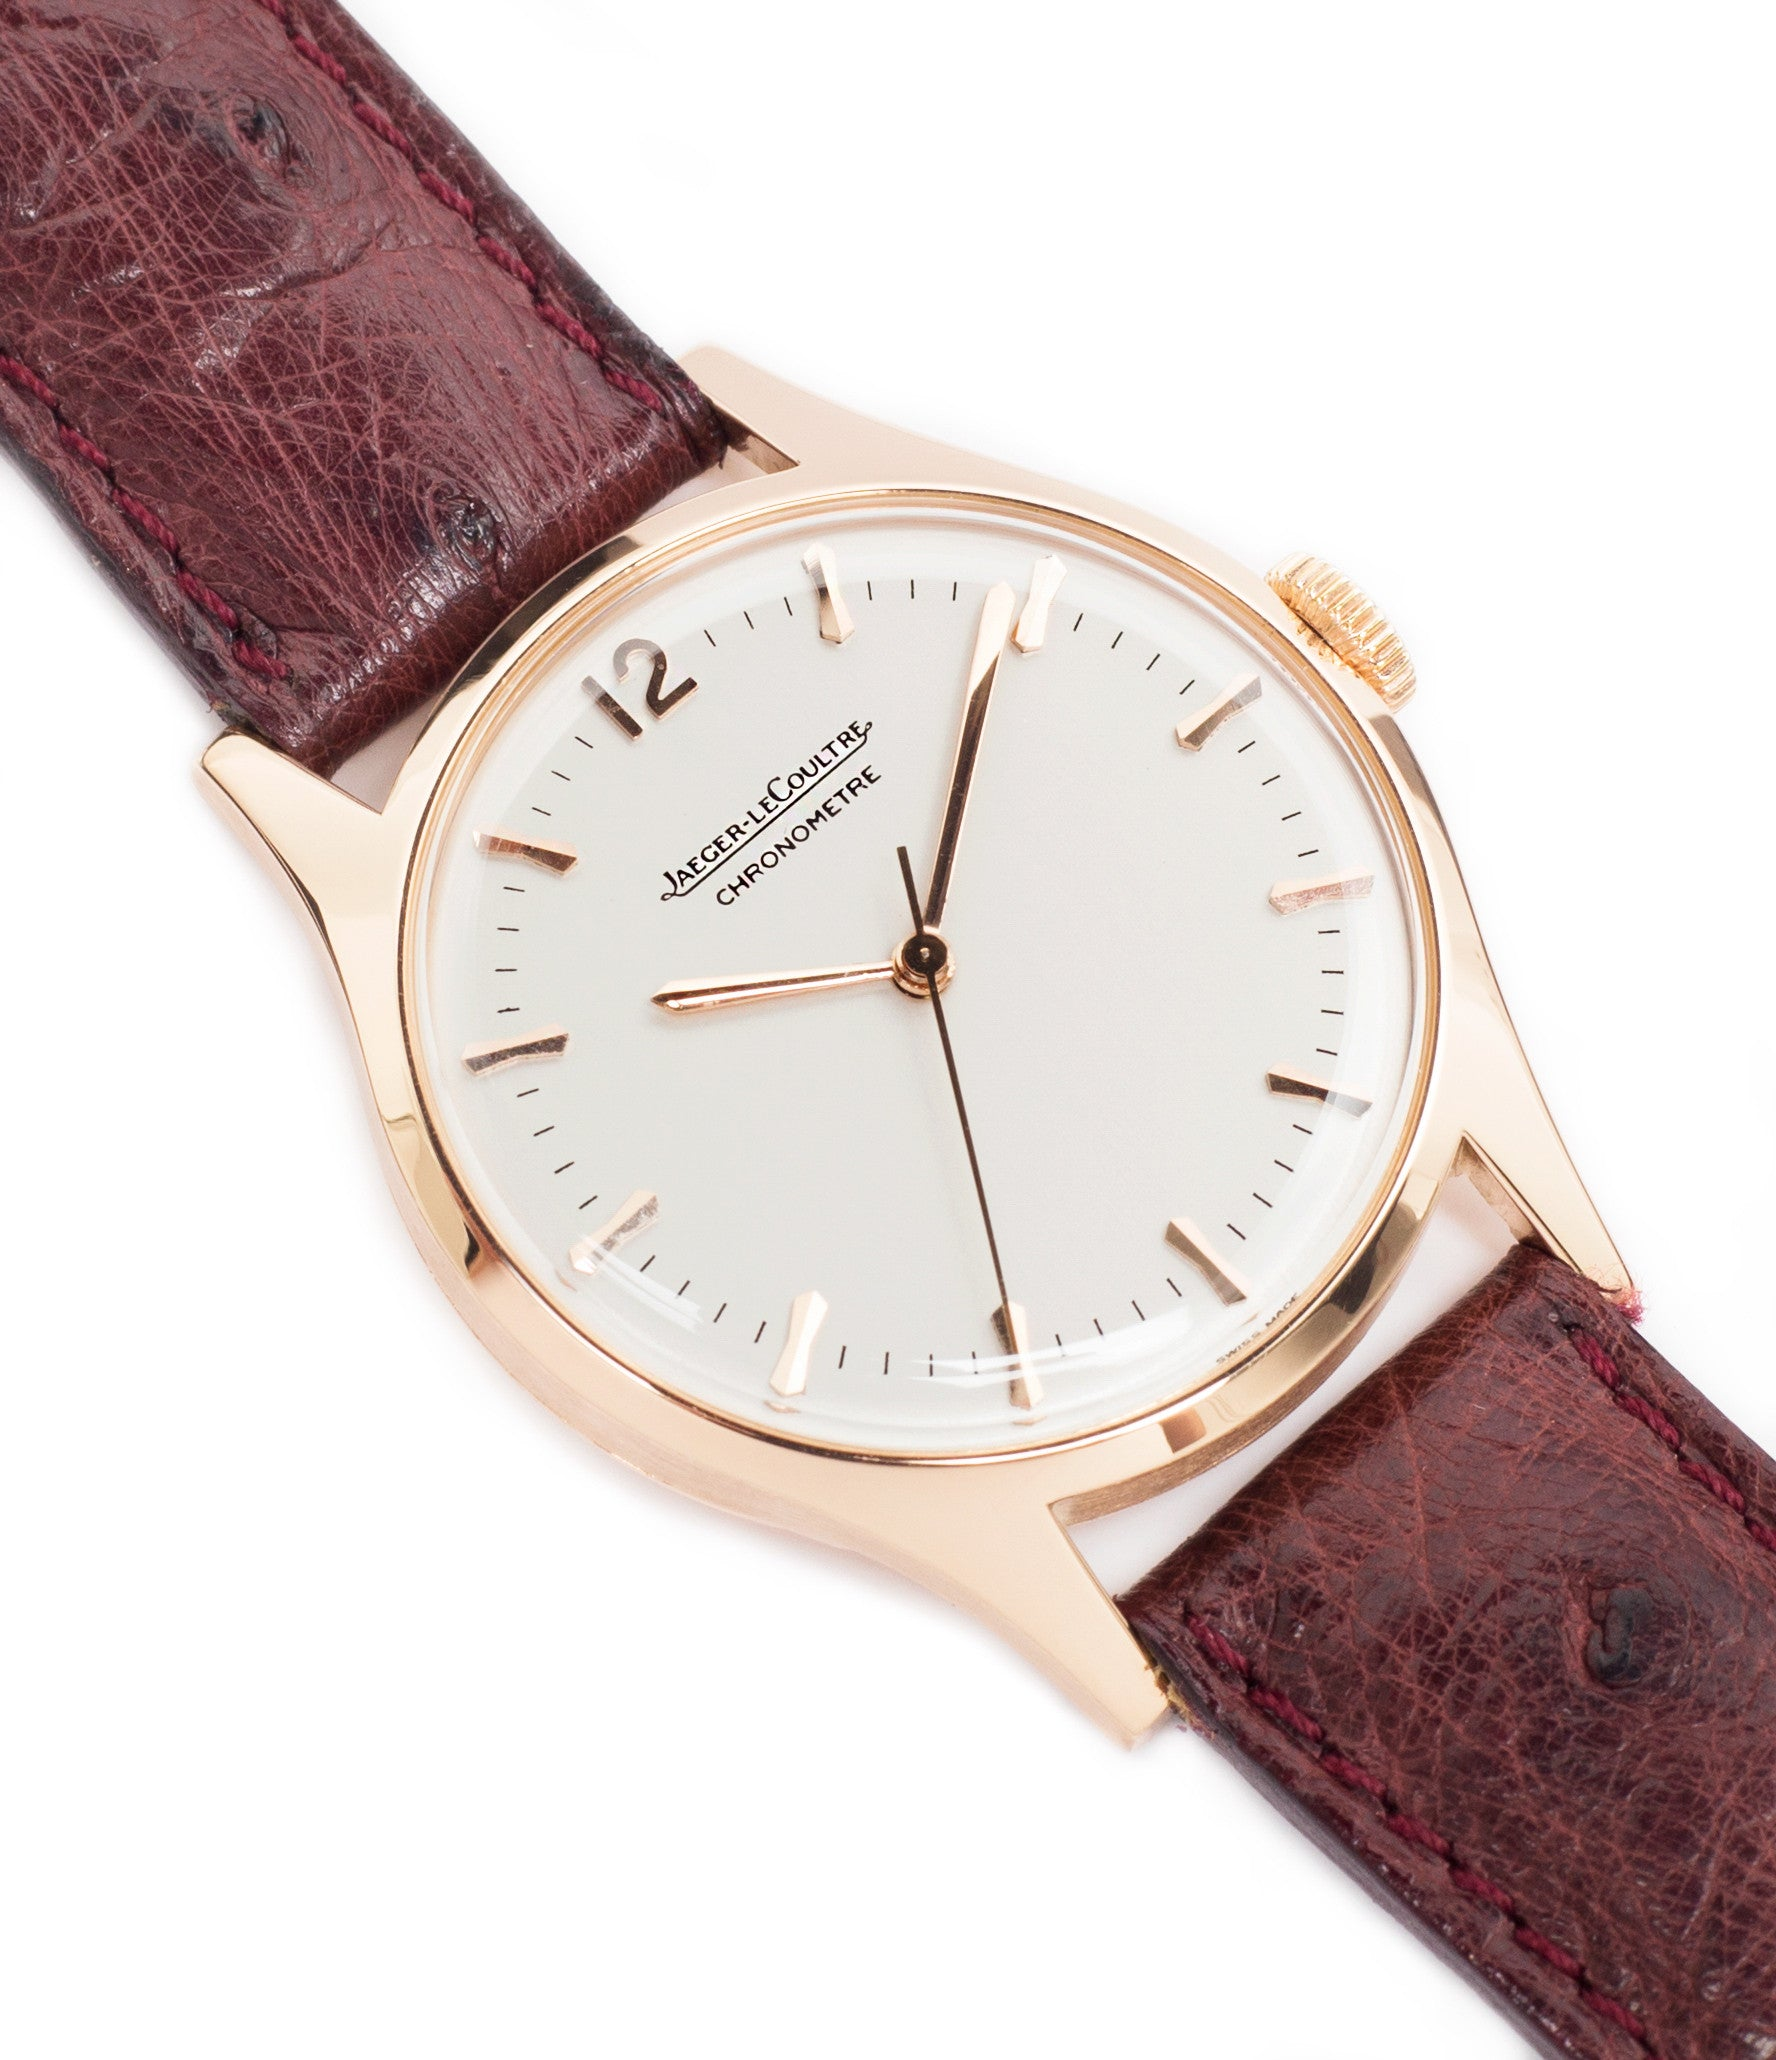 selling Jaeger-LeCoultre Geophysic Luxe 2985 rose gold rare vintage watch online for sale at A Collected Man London